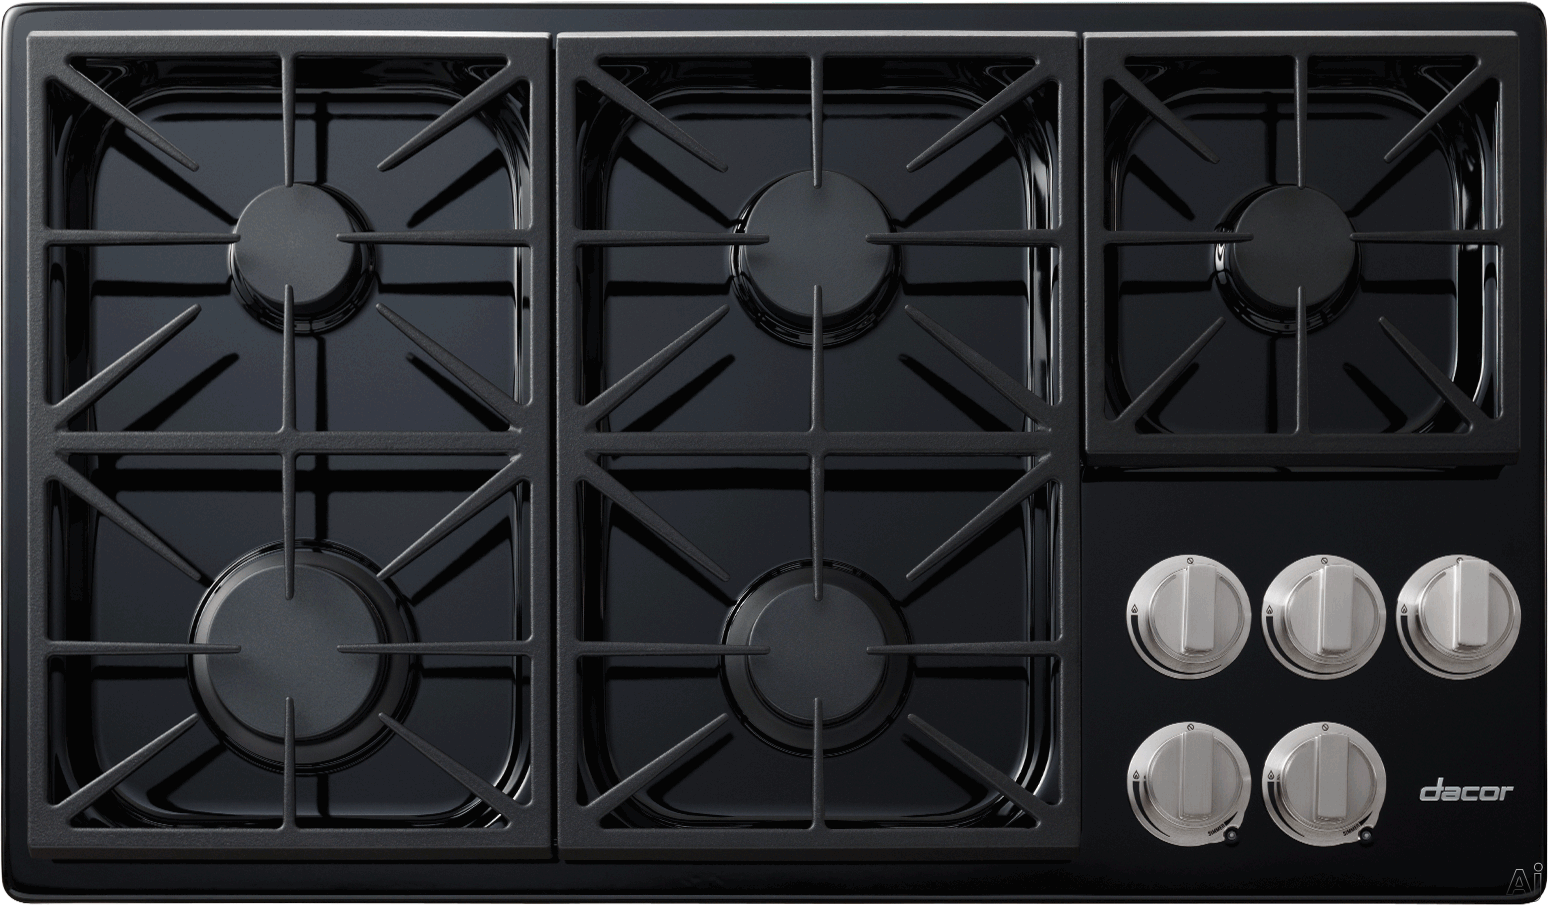 Dacor Discovery DYCT365GBLP 36 Inch Gas Cooktop with 5 Sealed Burners, SimmerSear Burner, Dual Stacked Burners, Perma-Flame Technology, Illumina Burner Controls, PermaClean Finish and Continuous Grates: Black, Liquid Propane